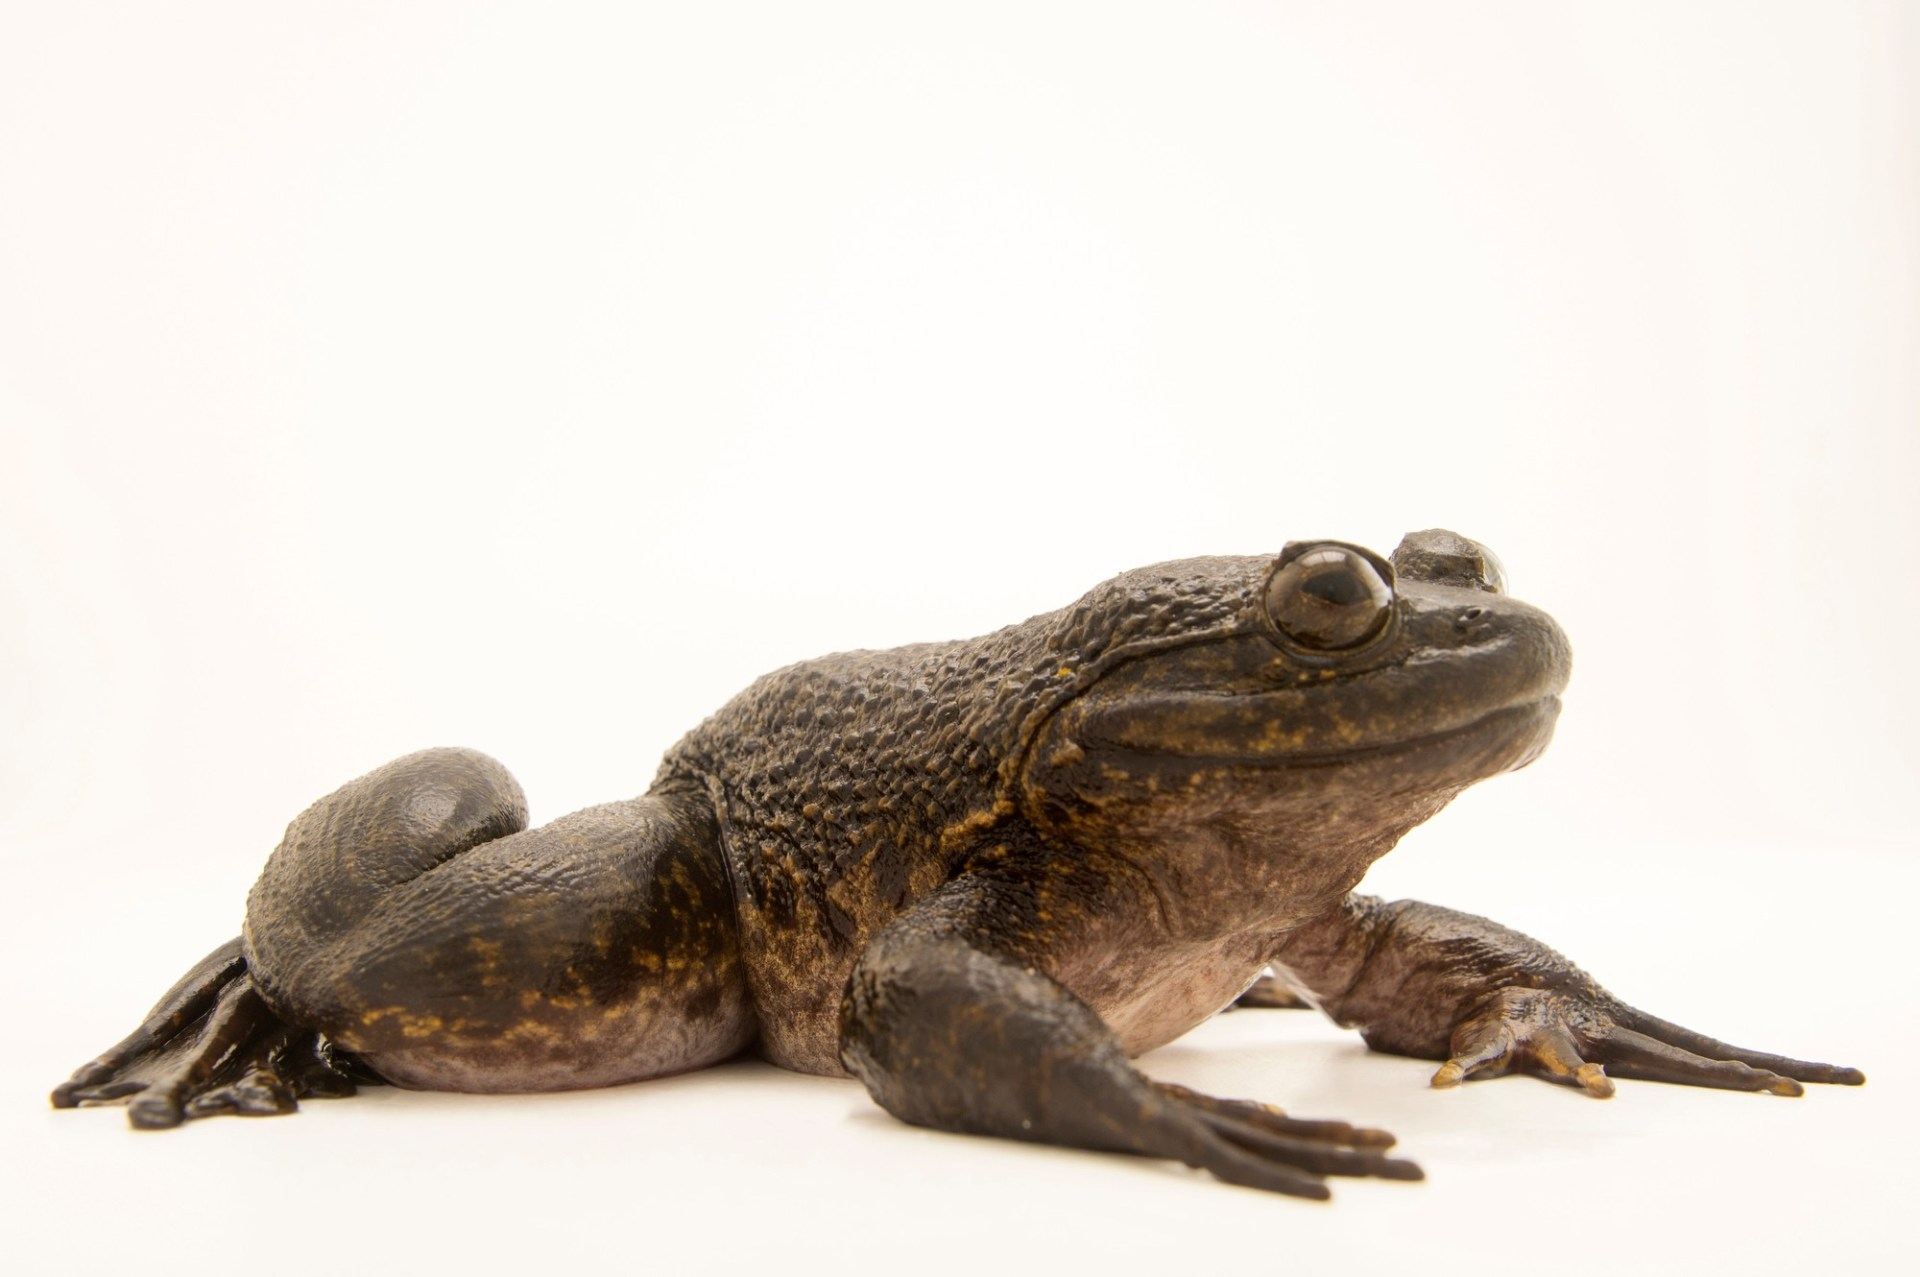 Photo: Giant slippery frog (Conraua robusta) collected near Manjo, Cameroon.